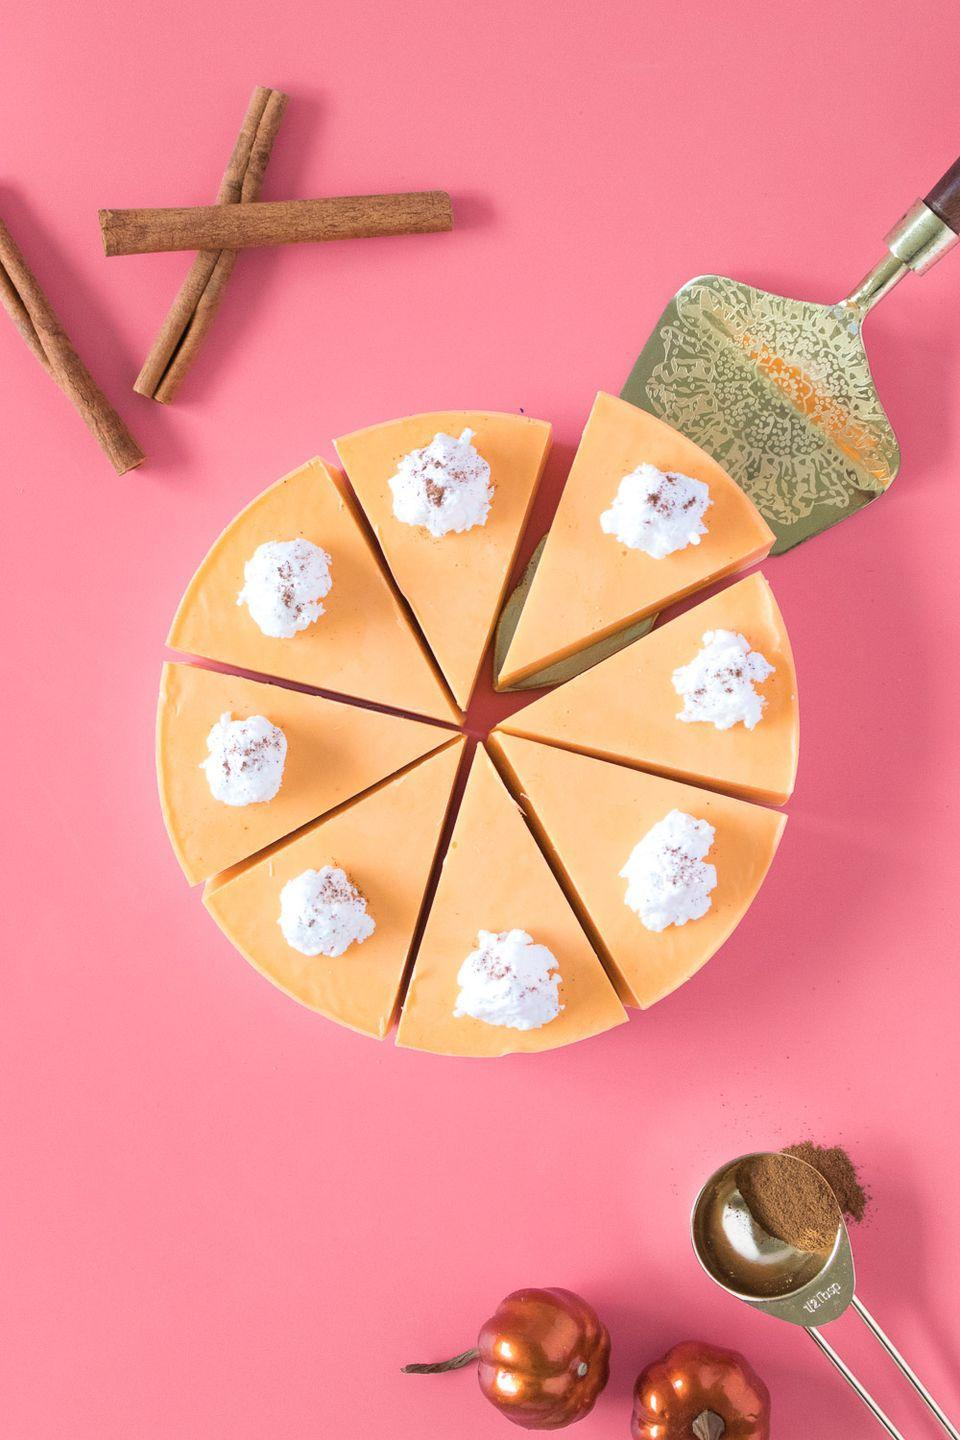 """<p>Although this shea butter creation looks and smells as good as the edible version, it'll leave a soapy aftertaste. In other words, don't eat it — just lather up with its pumpkin spice goodness. </p><p><em><a href=""""https://www.clubcrafted.com/diy-pumpkin-pie-soap/"""" rel=""""nofollow noopener"""" target=""""_blank"""" data-ylk=""""slk:Get the tutorial at Club Crafted »"""" class=""""link rapid-noclick-resp"""">Get the tutorial at Club Crafted »</a></em></p>"""